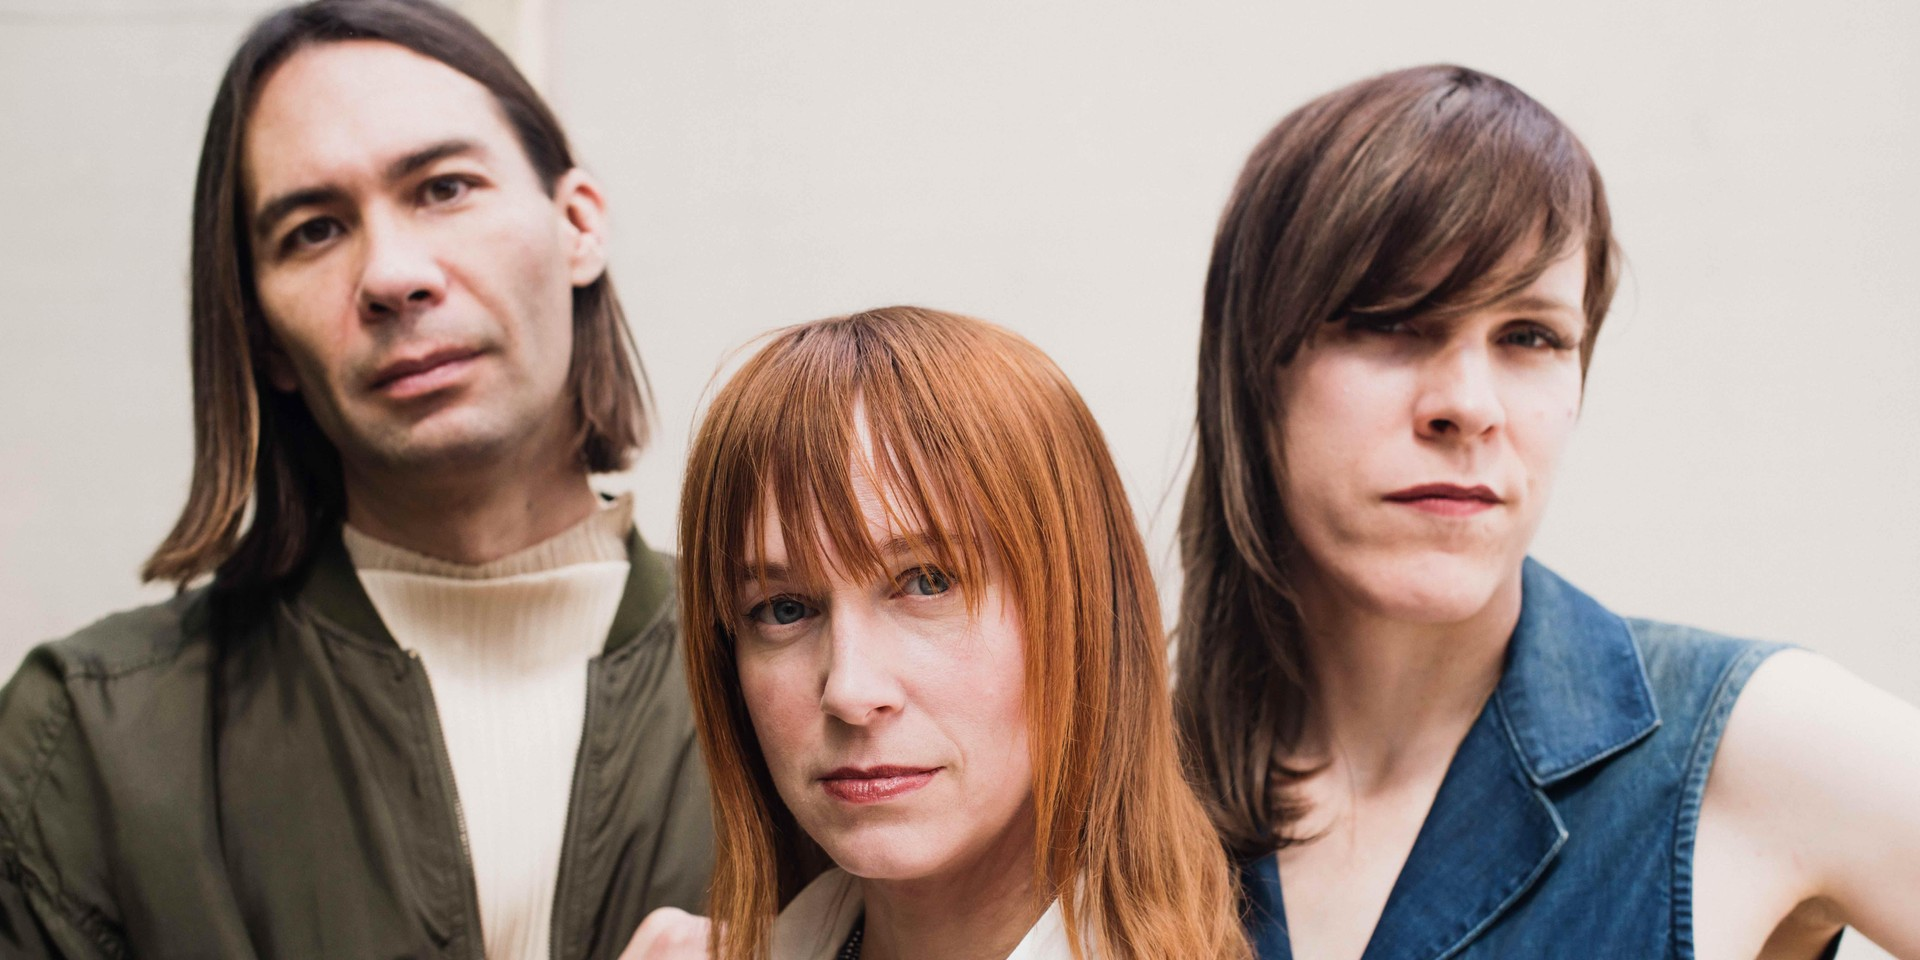 An interview with Rainer Maria about their latest album S/T, Midwest emo and more